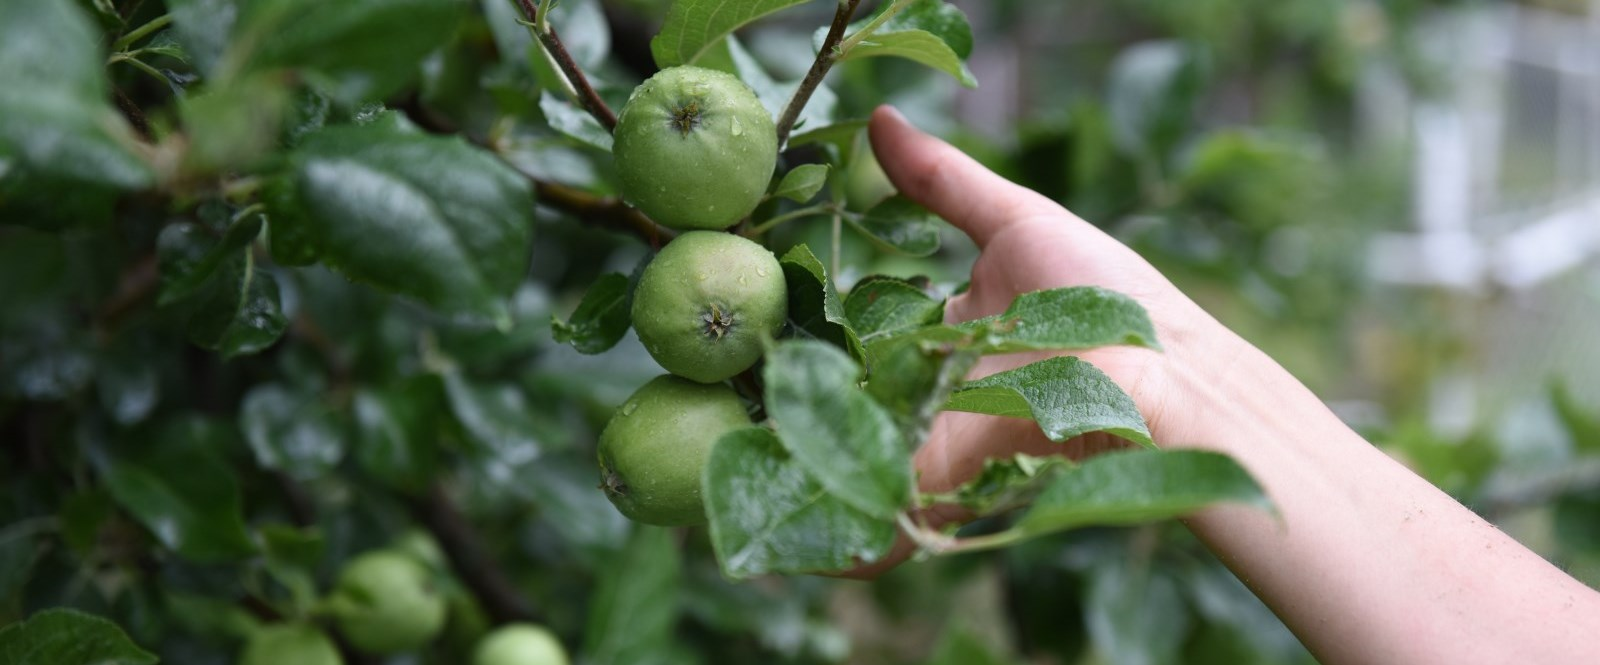 hand reaching for green apples in a tree